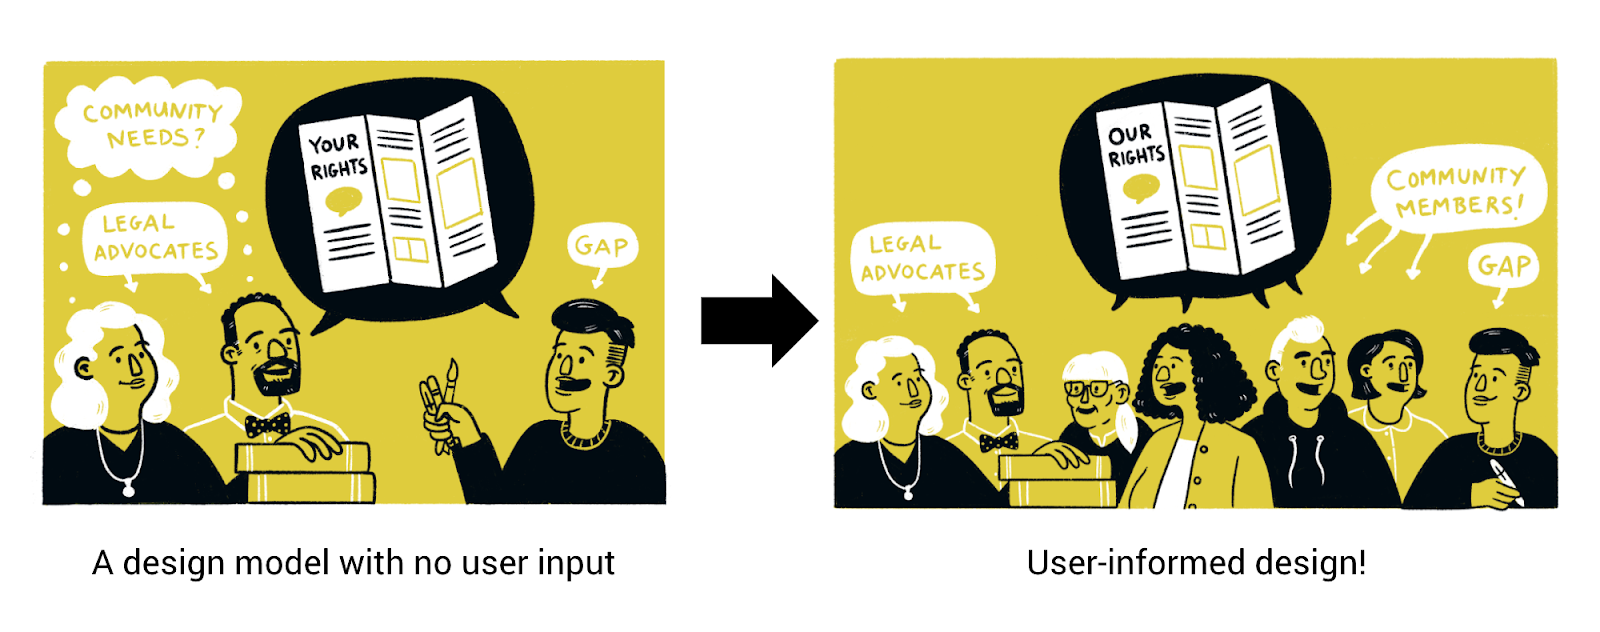 Graphic Advocacy Project's model: transitioning from a design model with no user input to one informed by users